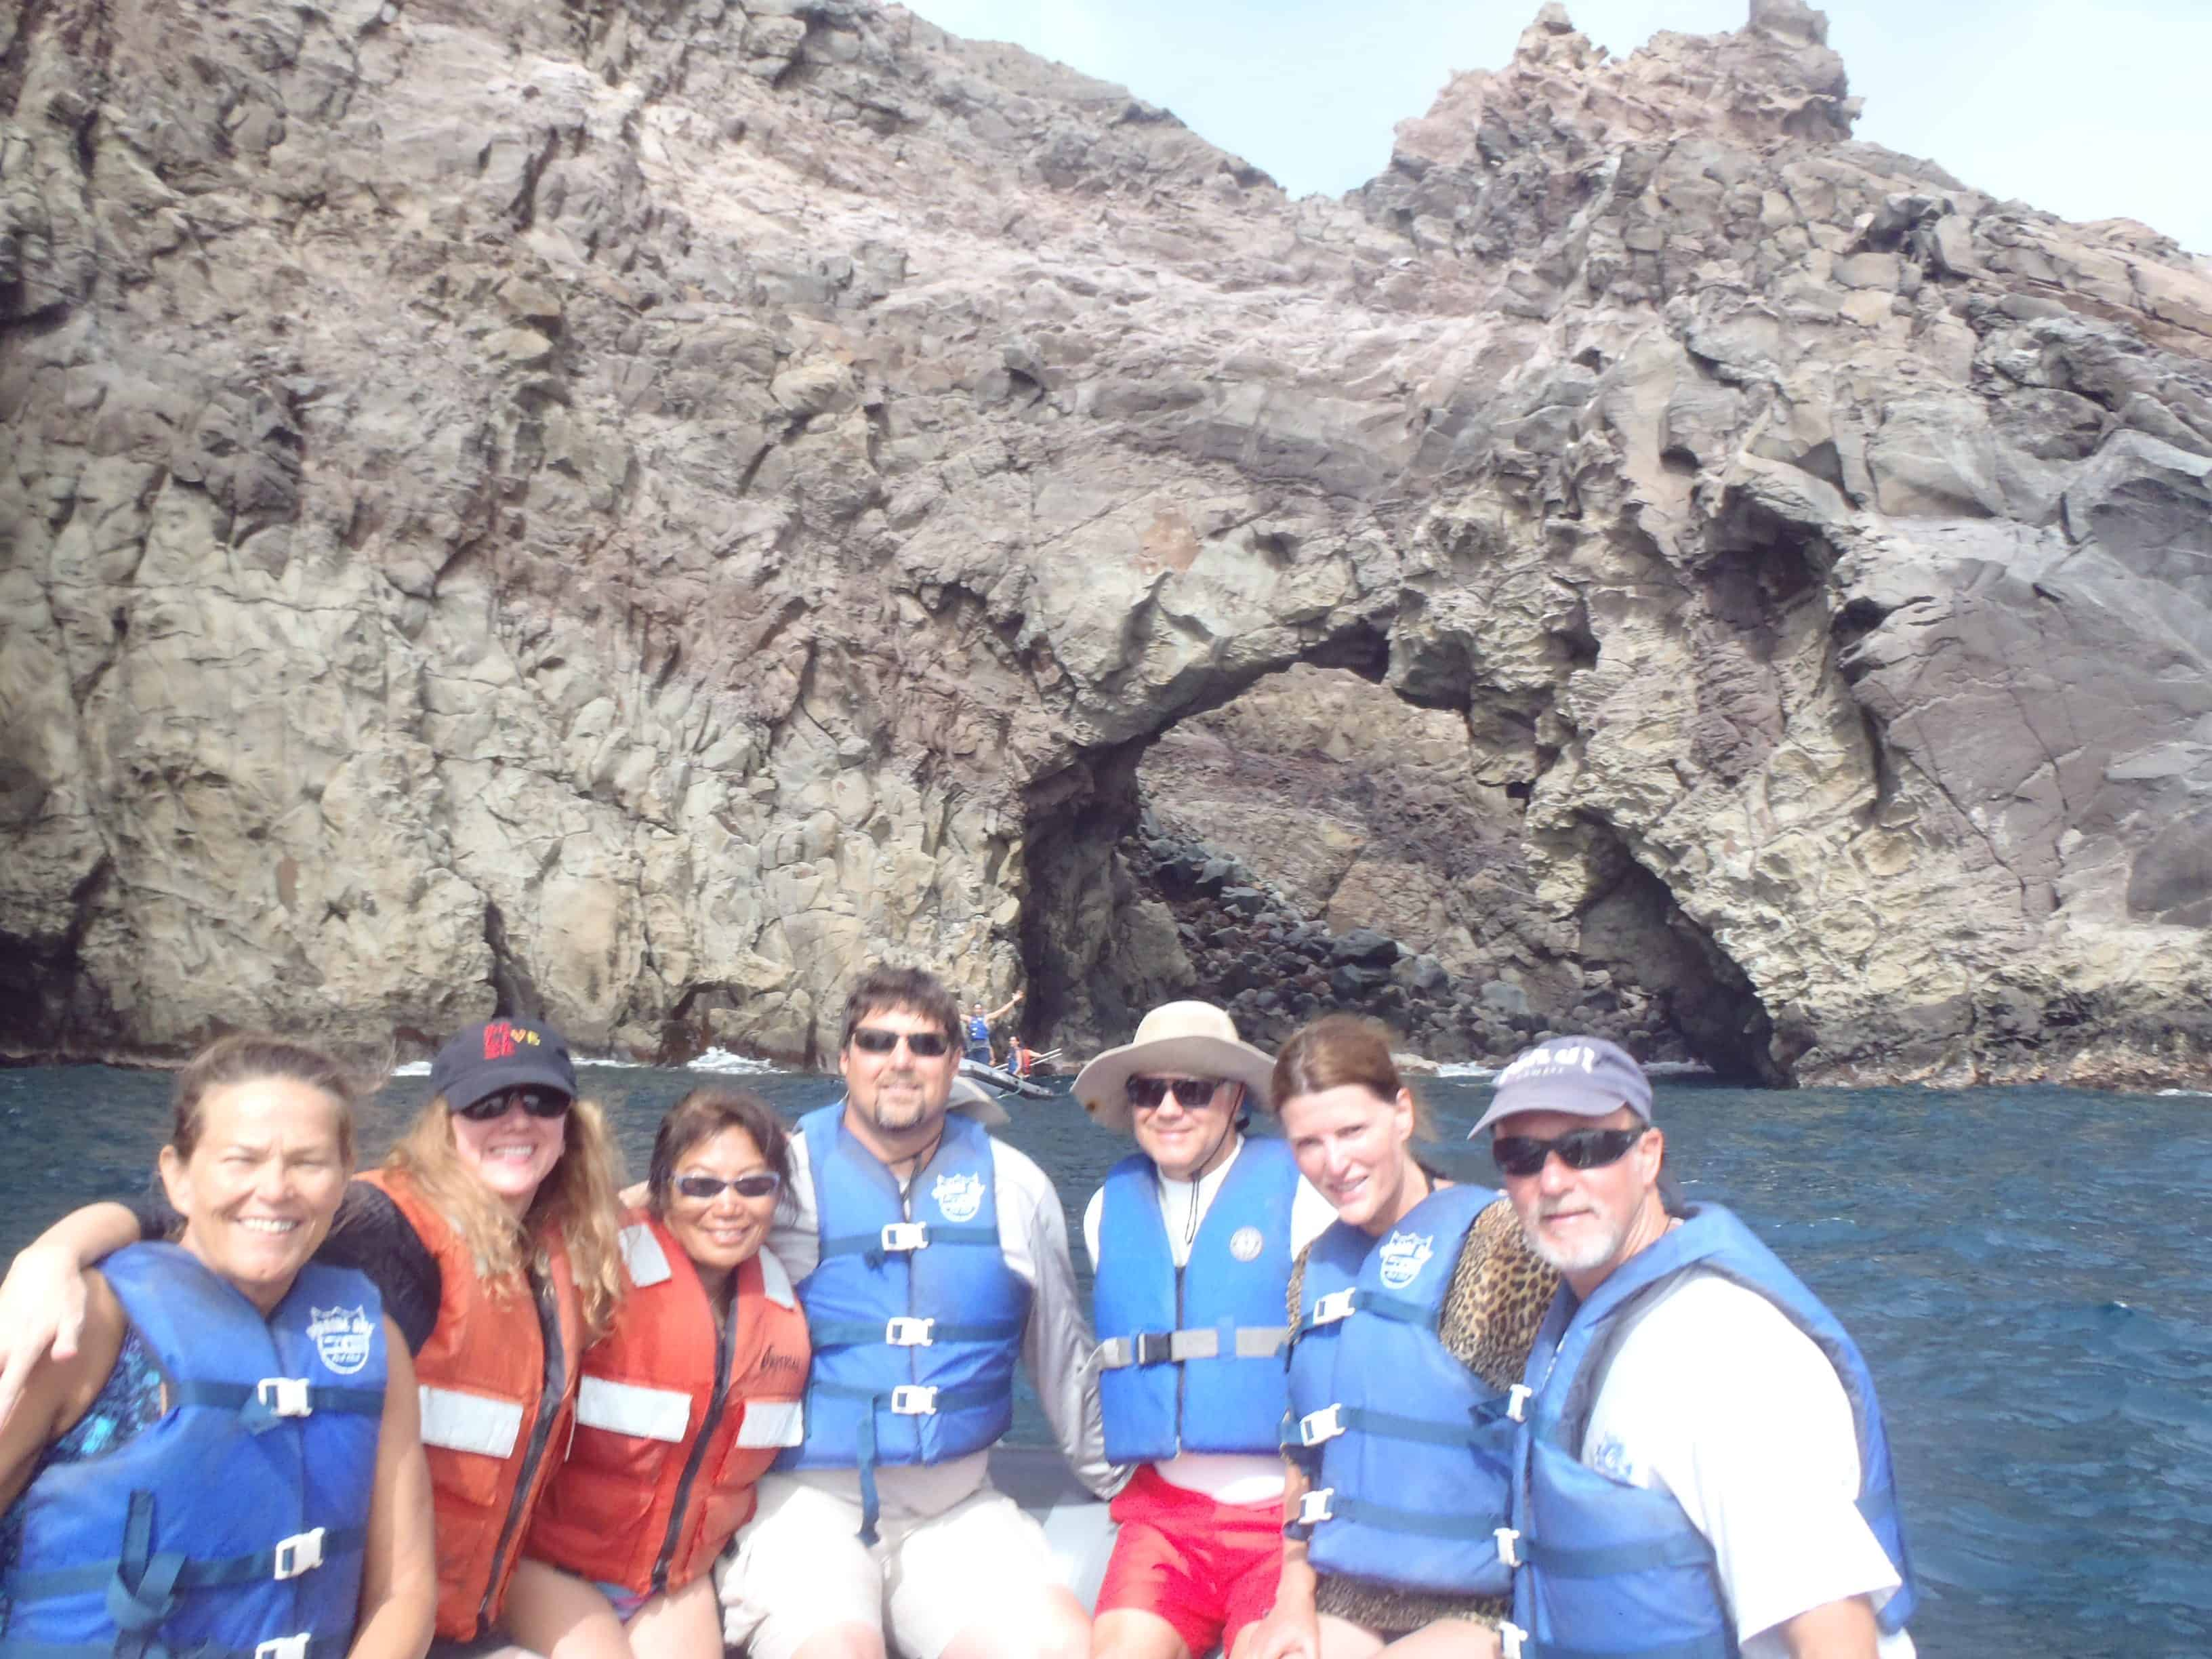 sightseeing at San Benedicto on our Channel Islands Dive adventures Socorro trip aboard the Nautilus Explorer